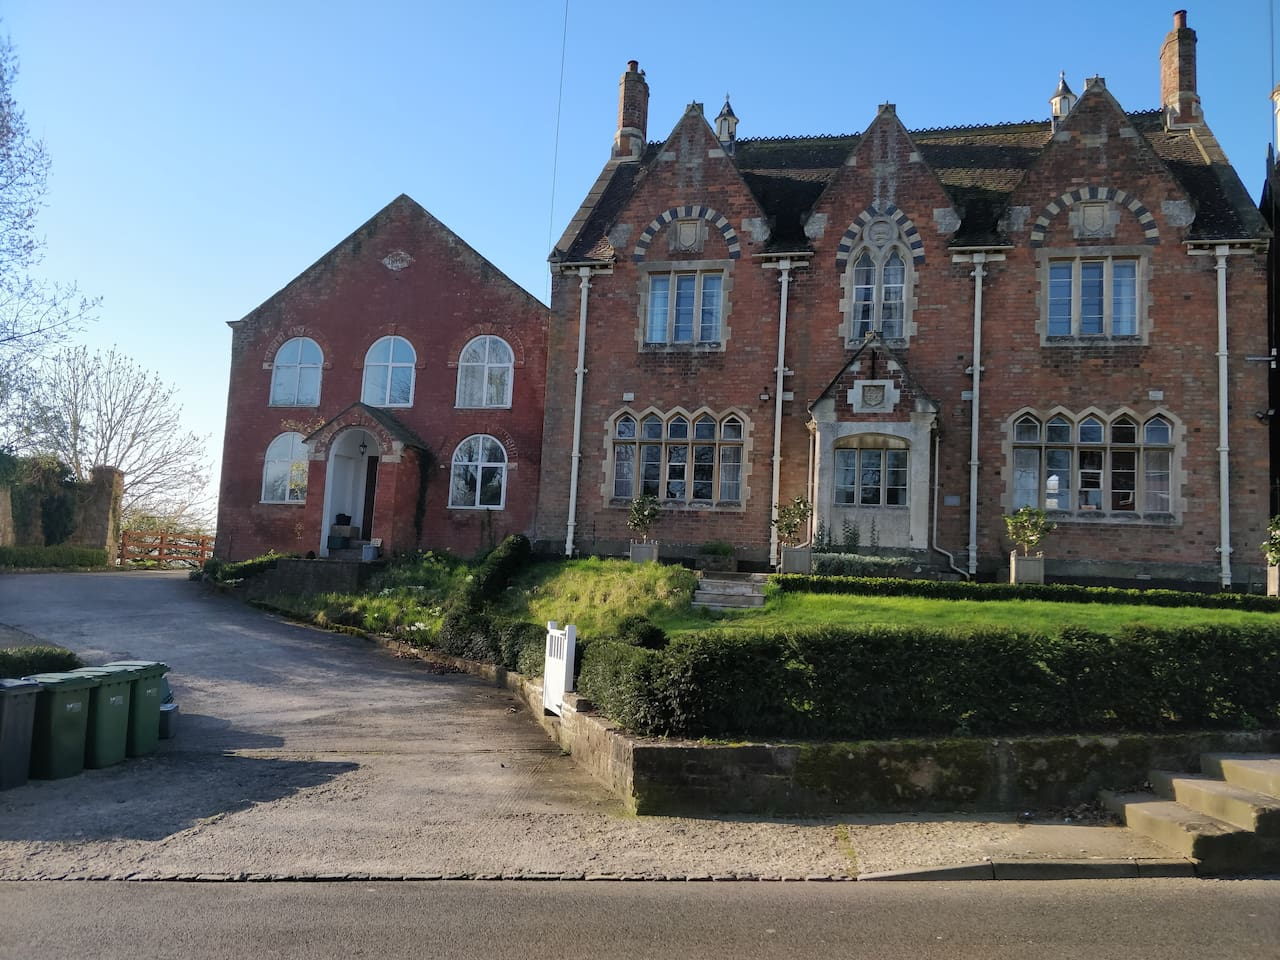 The Old School House was built in 1861, and was the village school for 100 years.  It has recently been lovingly converted into a very large and comfortable family home on the edge of the village of Berkeley, overlooking the open countryside.